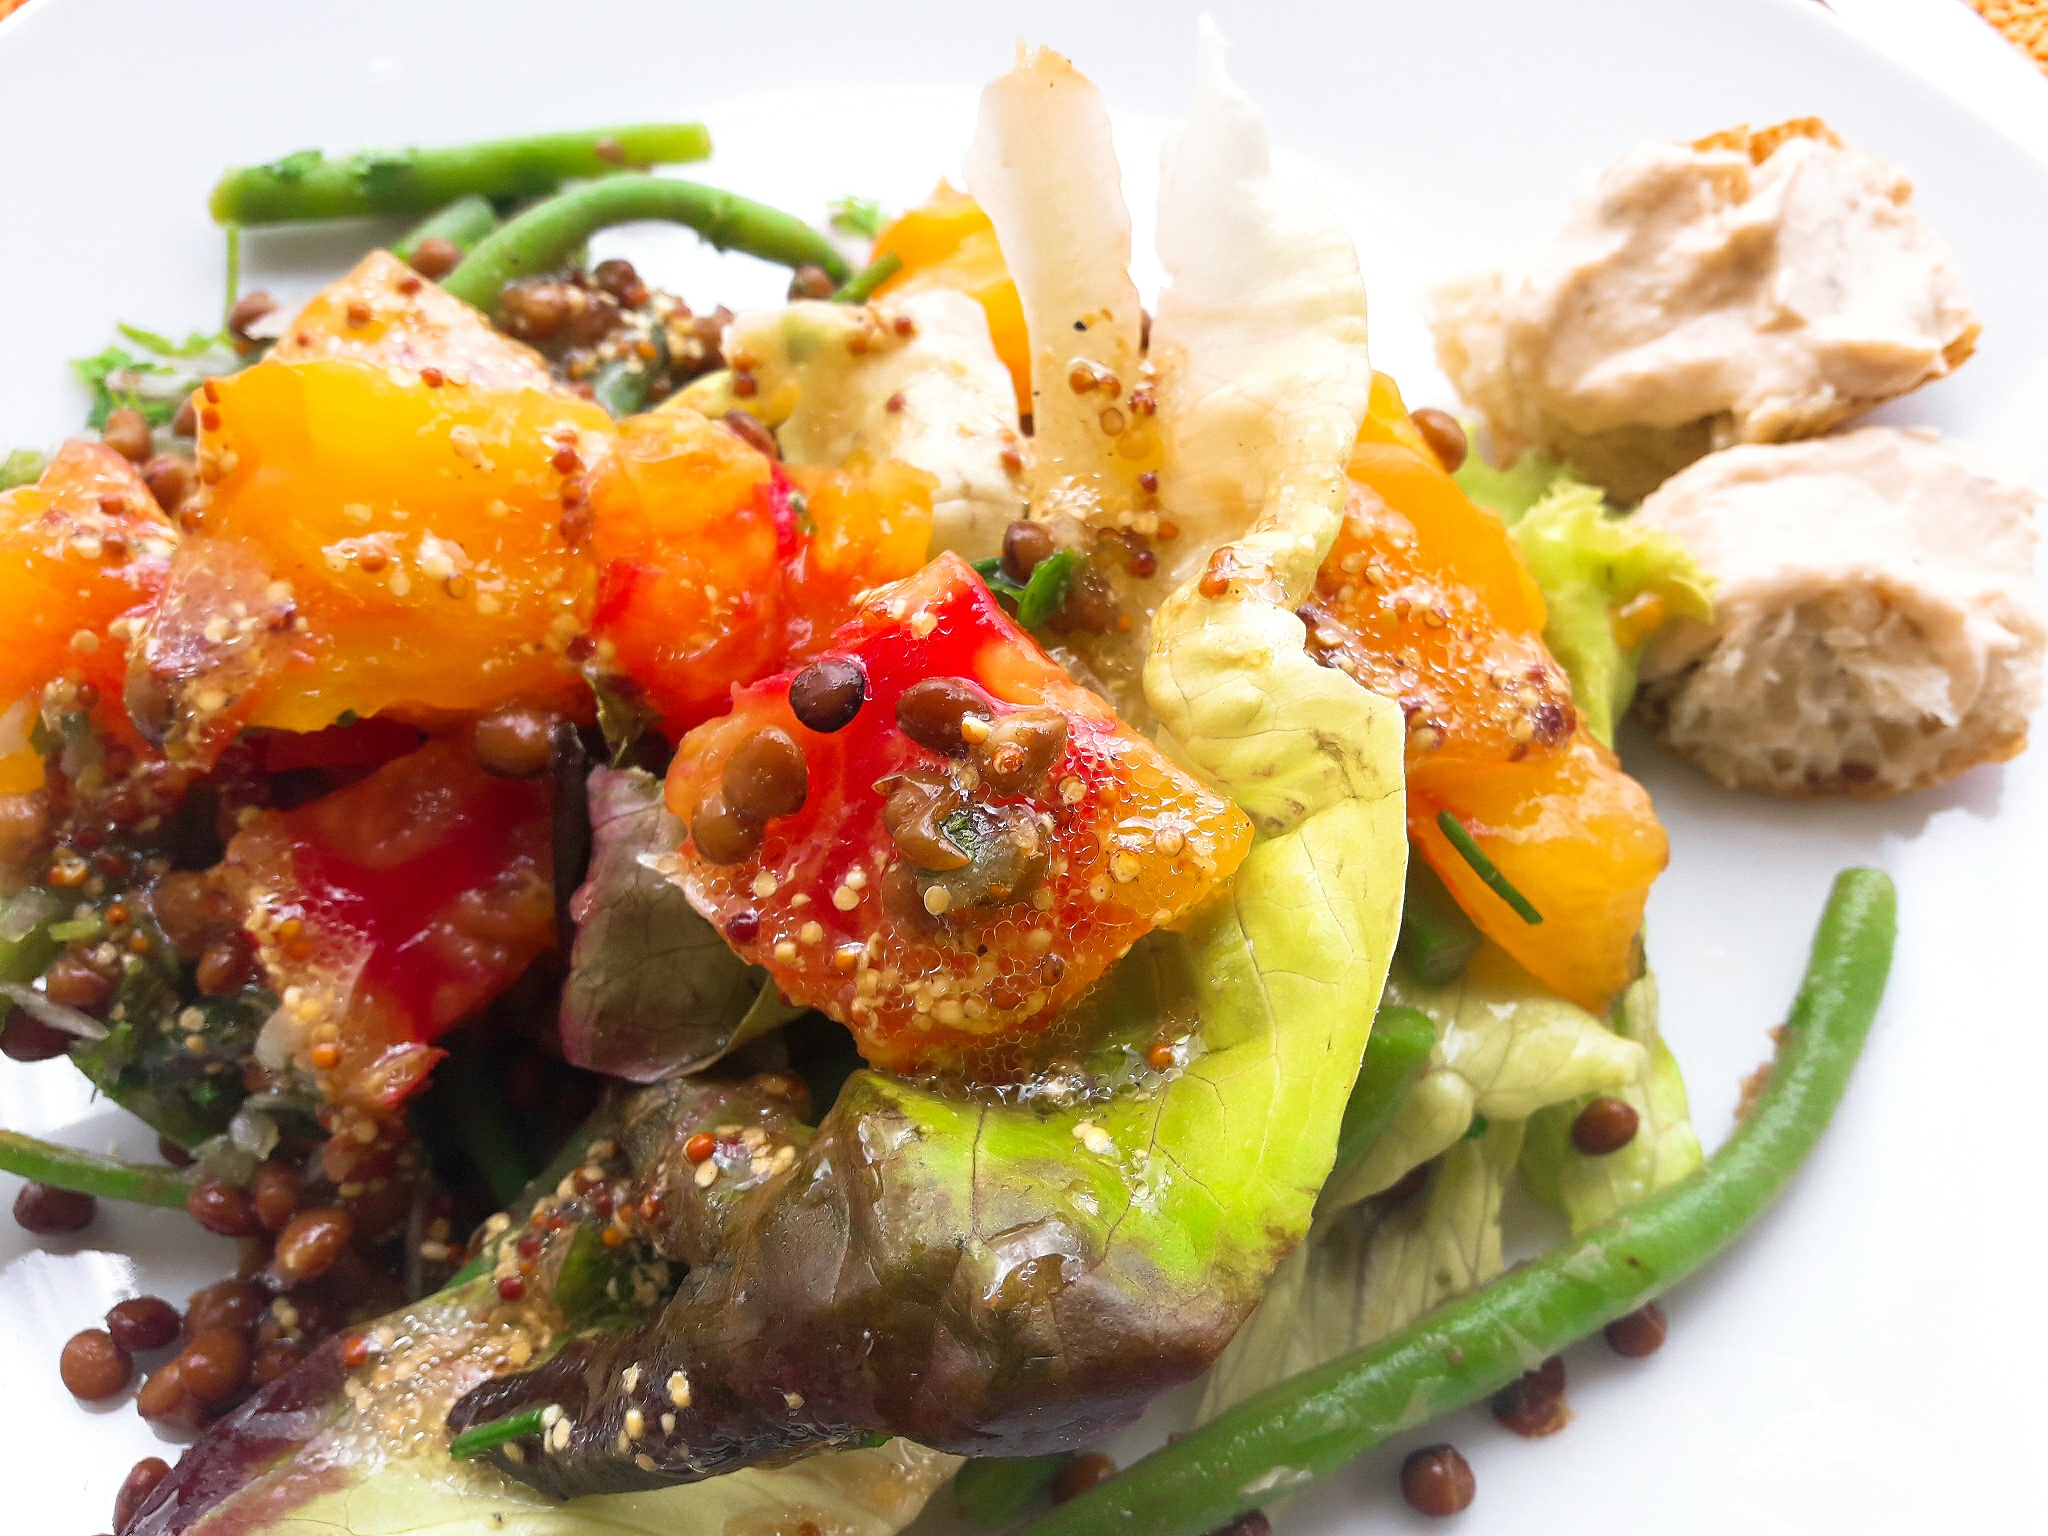 salade lentilles-tomates-haricots verts 3